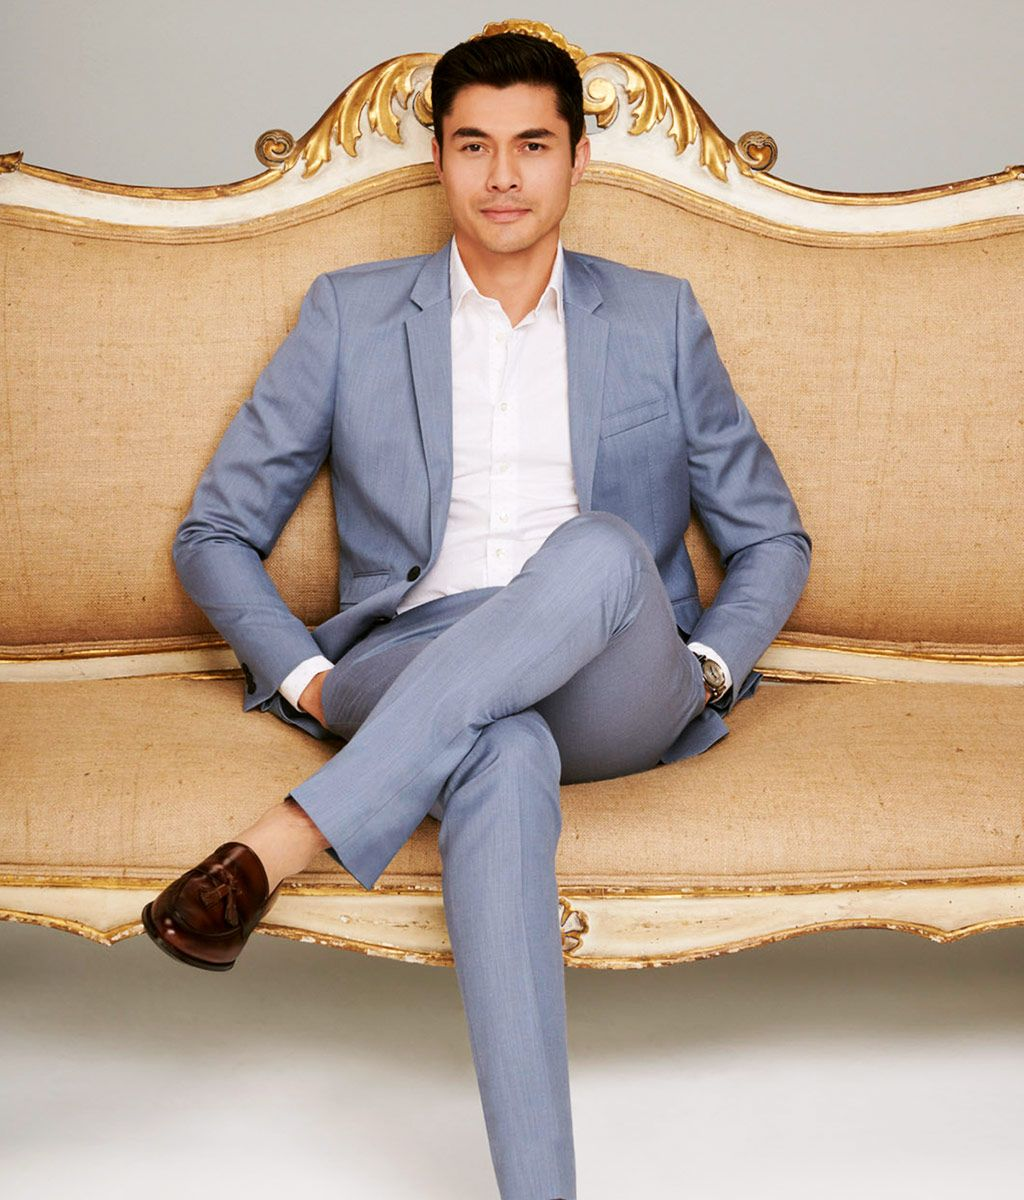 Henry Golding in a suit